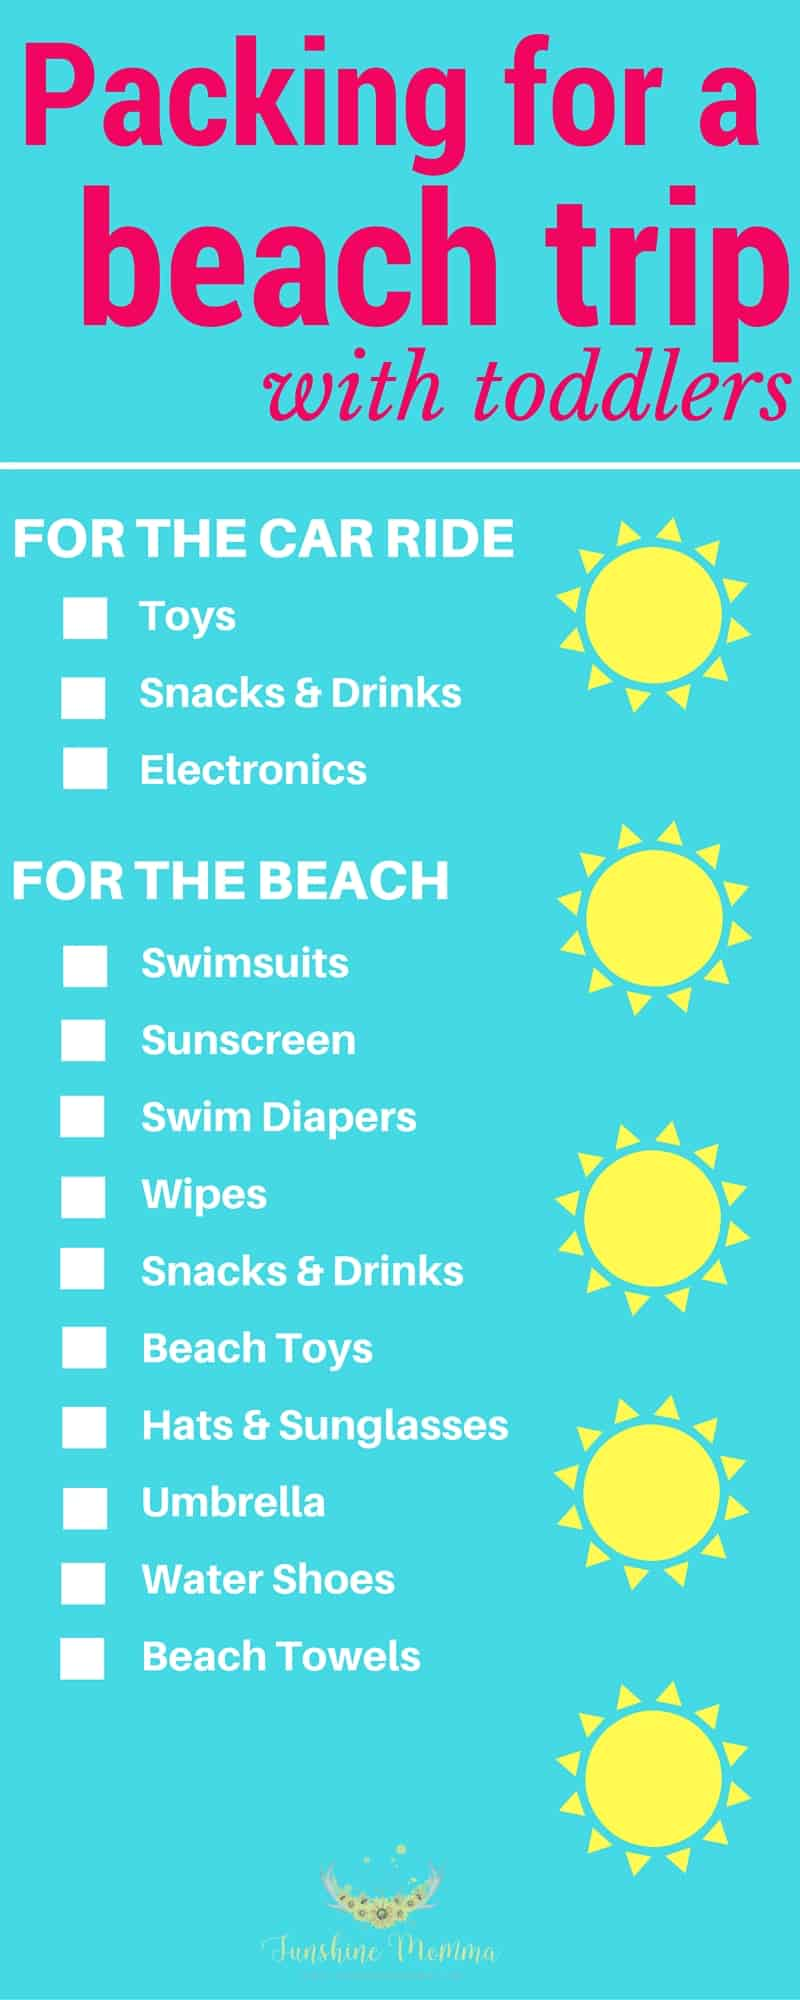 What to pack on a beach trip with toddlers